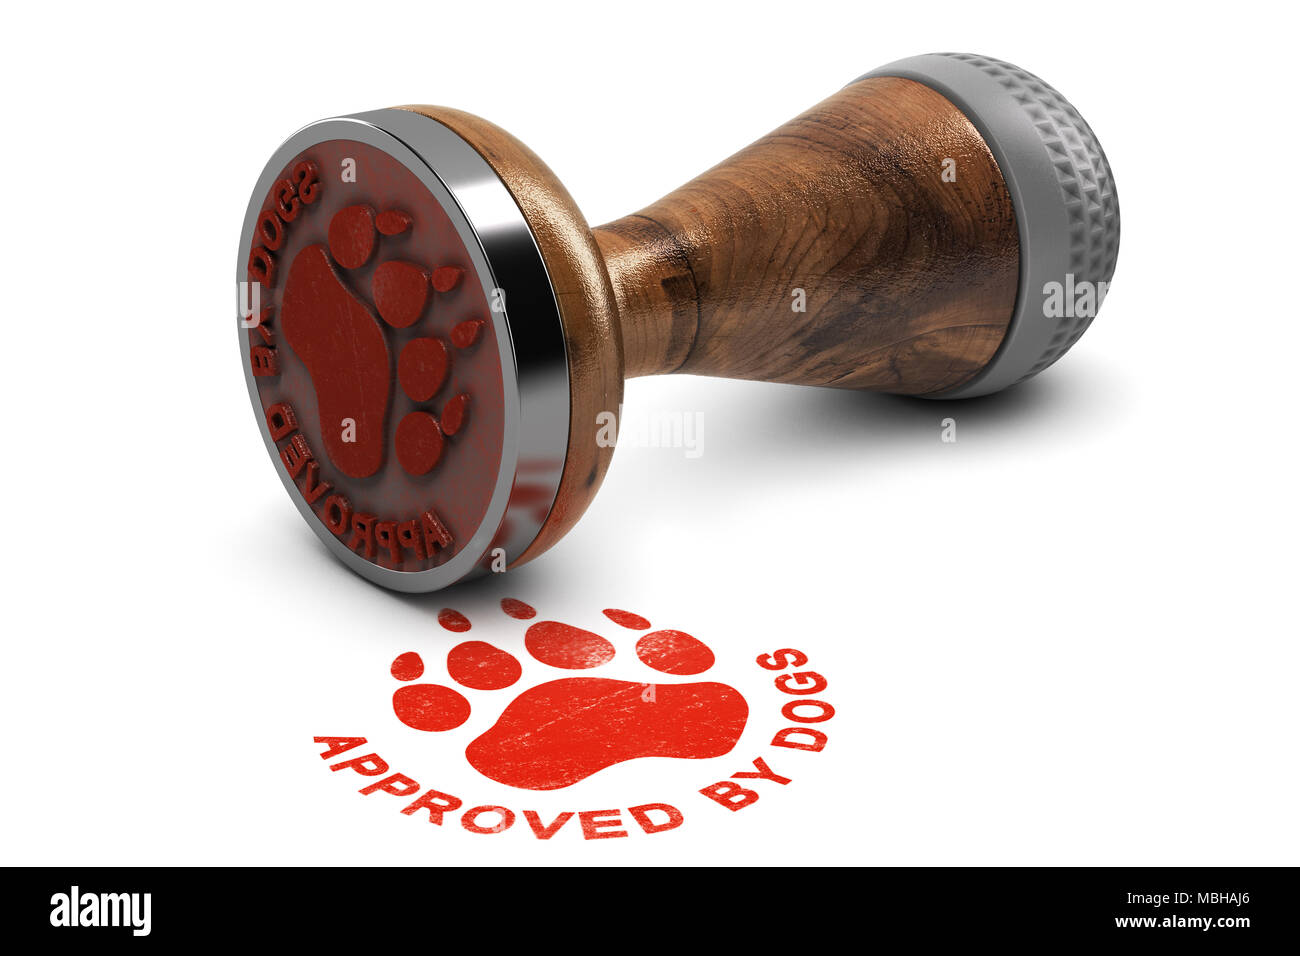 Rubber stamp with the text approved by dogs over white background. 3D illustration. Concept of pets grooming or training satisfaction - Stock Image